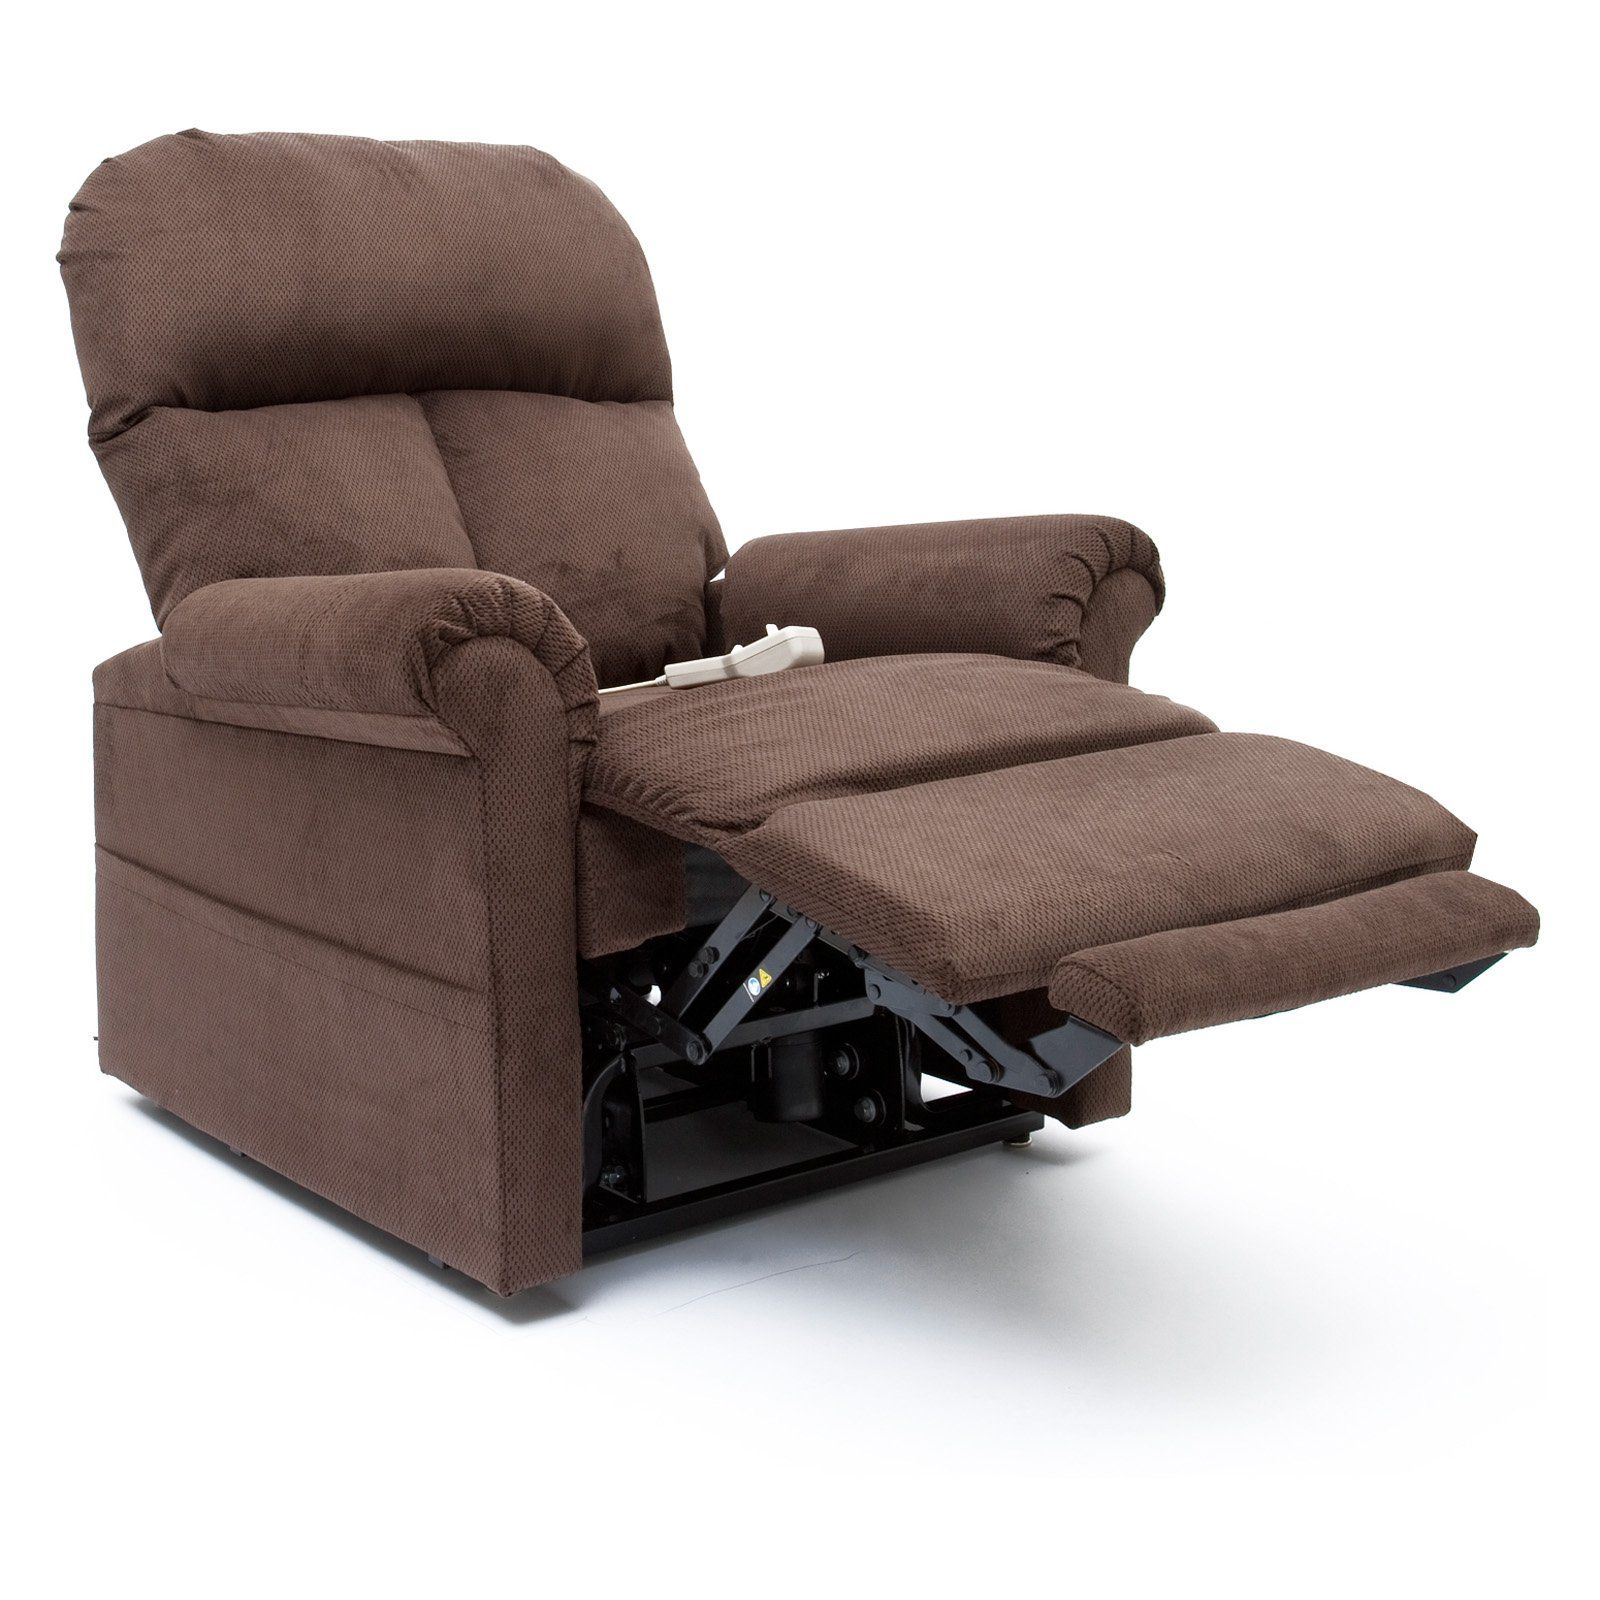 Pin by Jen on Offroad RV Best recliner chair, Recliner